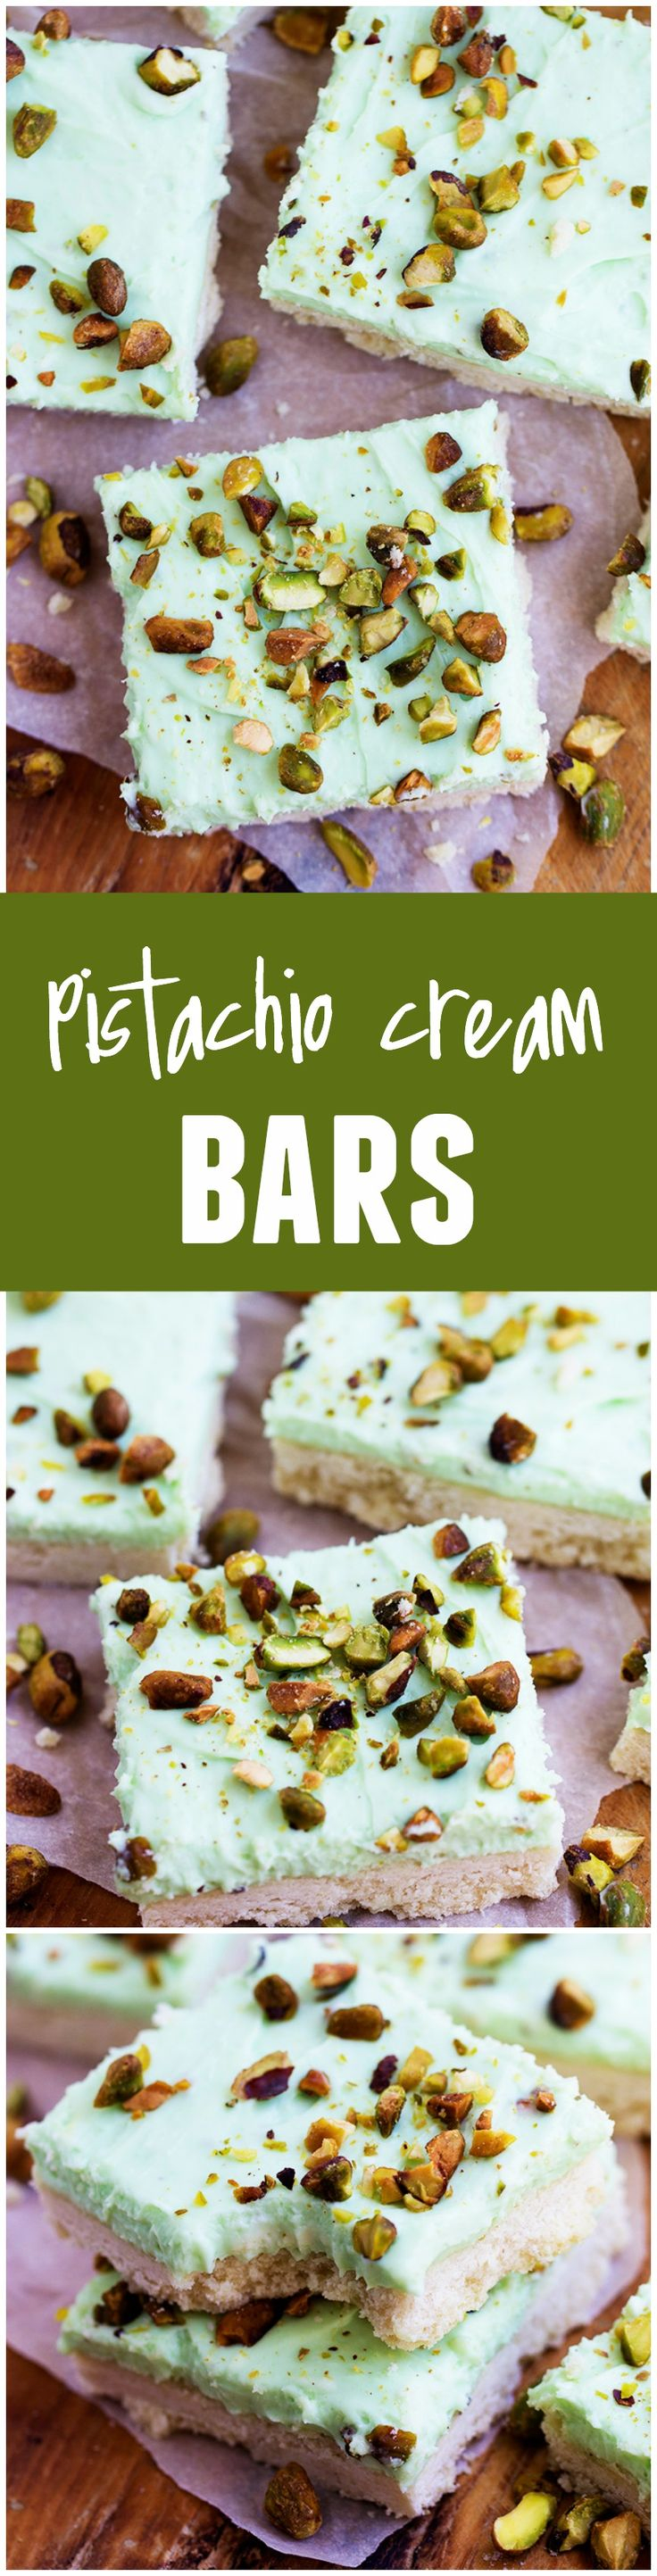 These Pistachio Cream Bars will be the star of your next potluck! Creamy and AMAZING!!